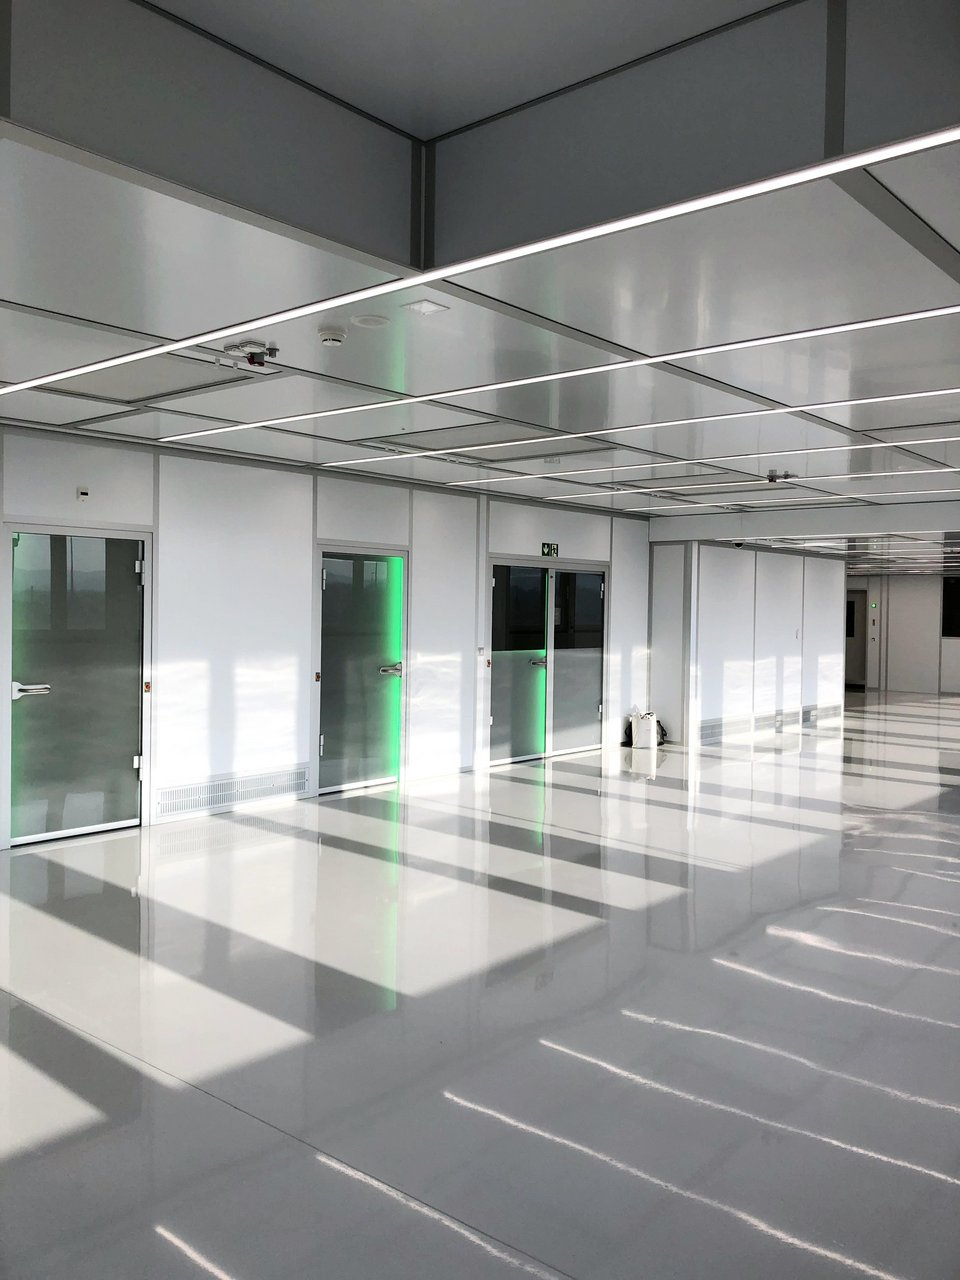 Cleanroom for cleaning and packaging titanium implants, ISO 7